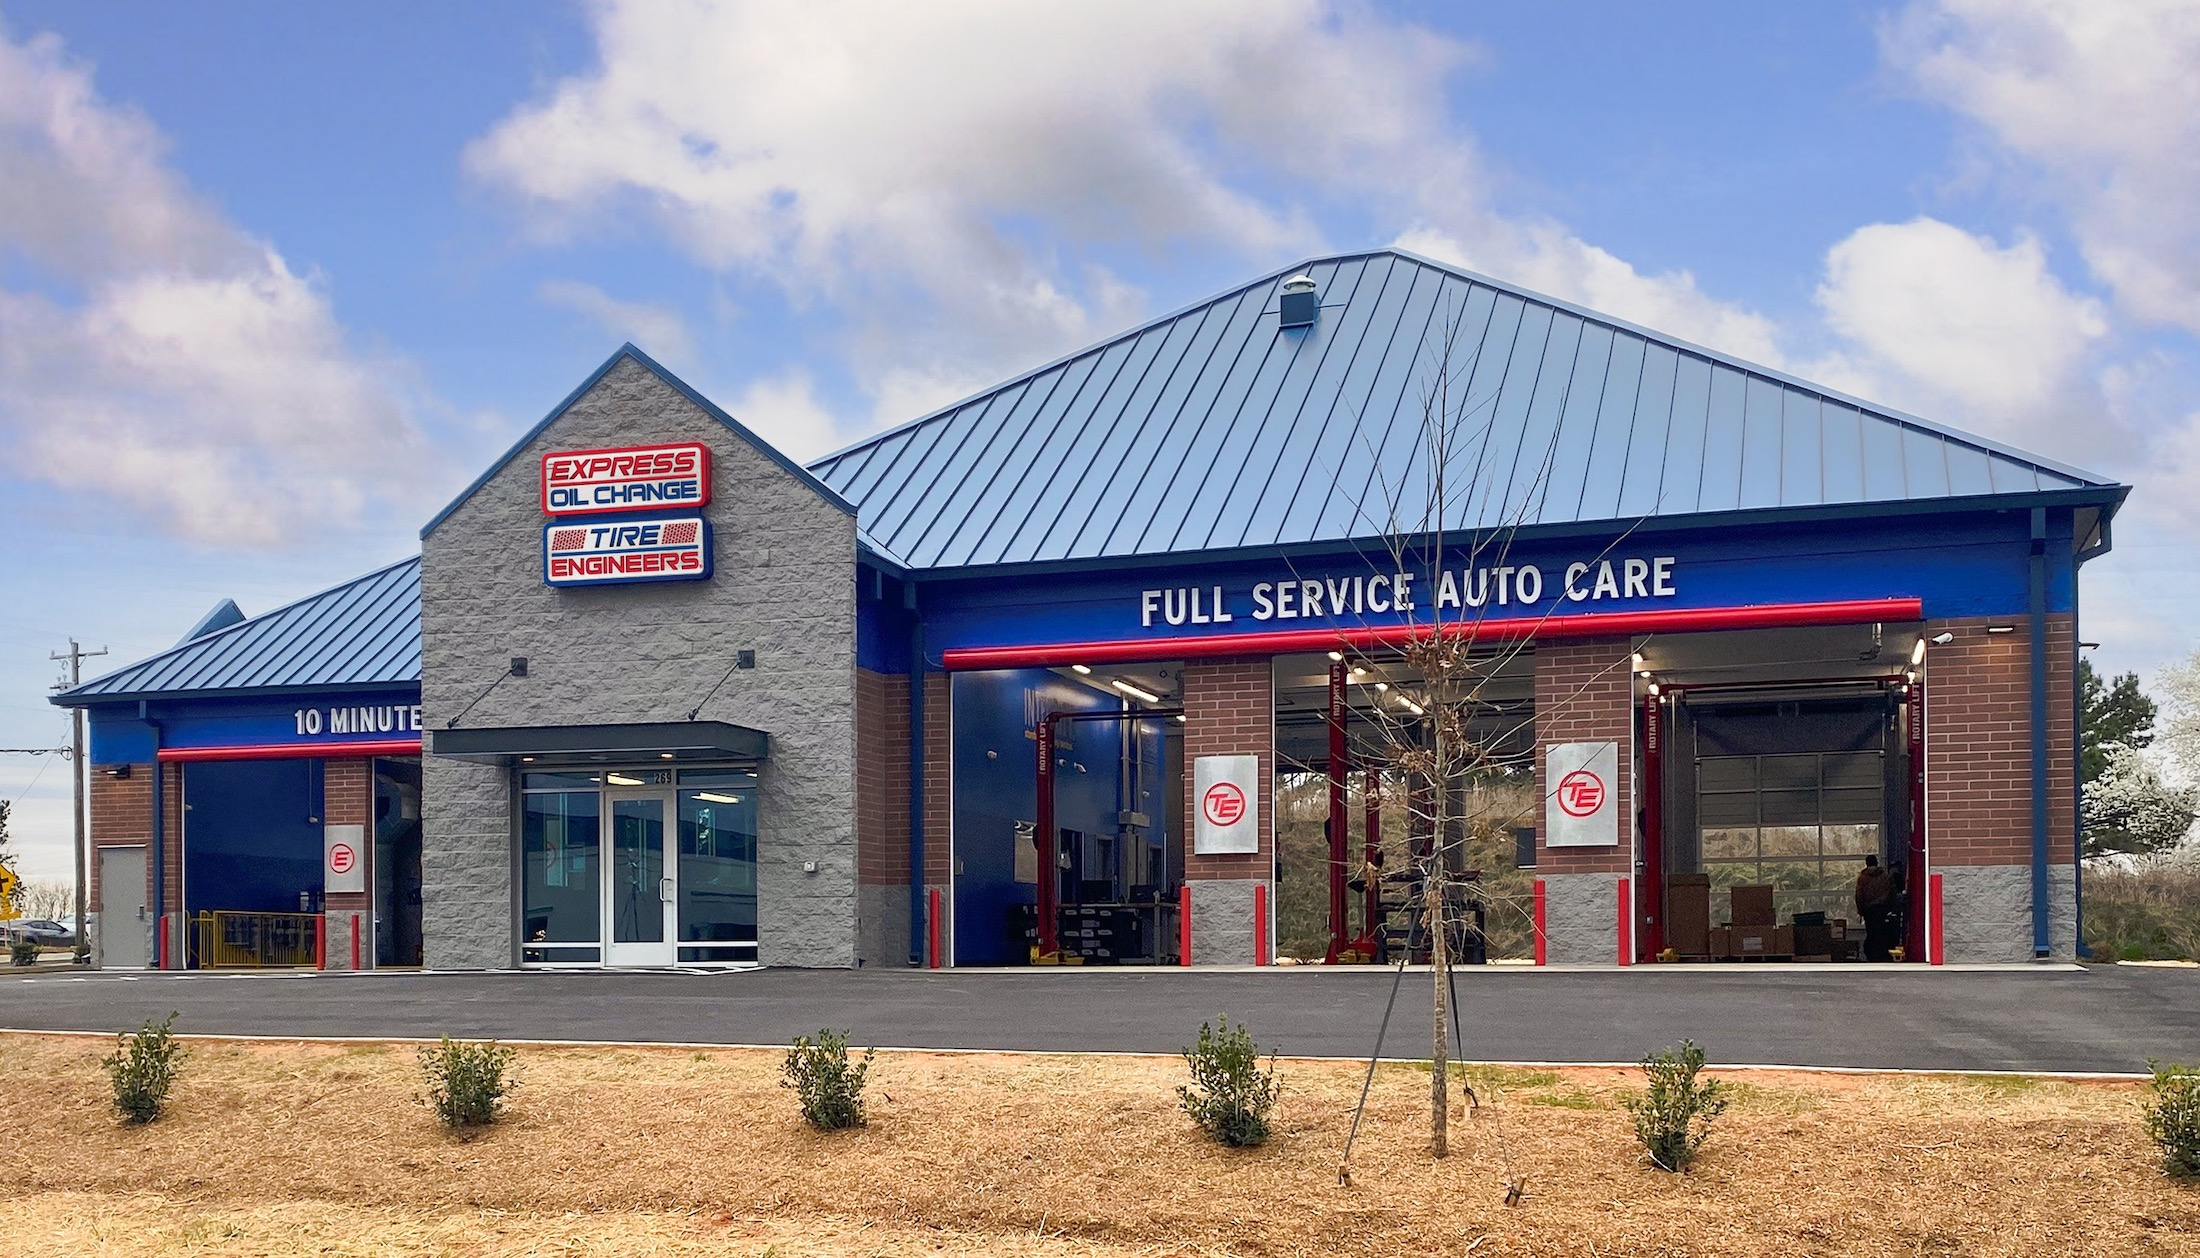 Express Oil Change & Tire Engineers at Simpsonville, SC - Martin's Run store